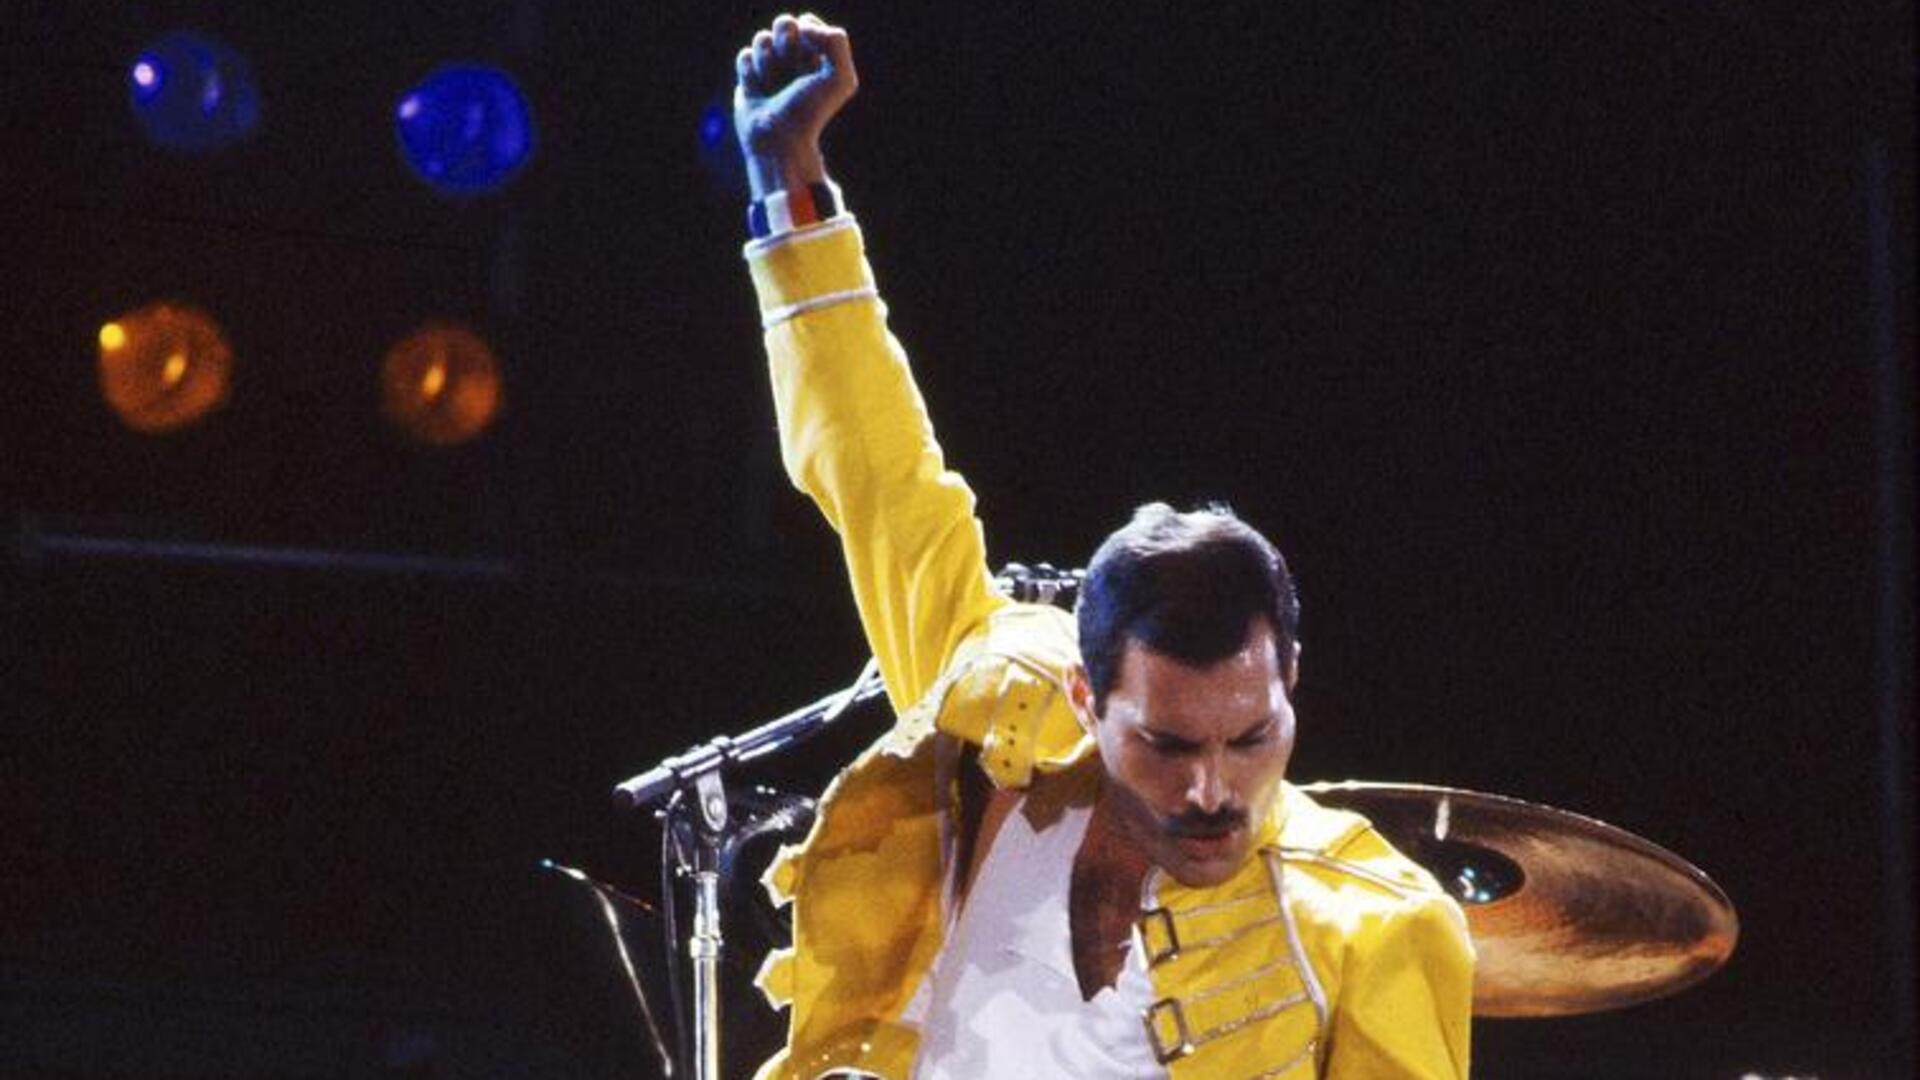 Freddie Mercury in performance, pumping his fist in the air